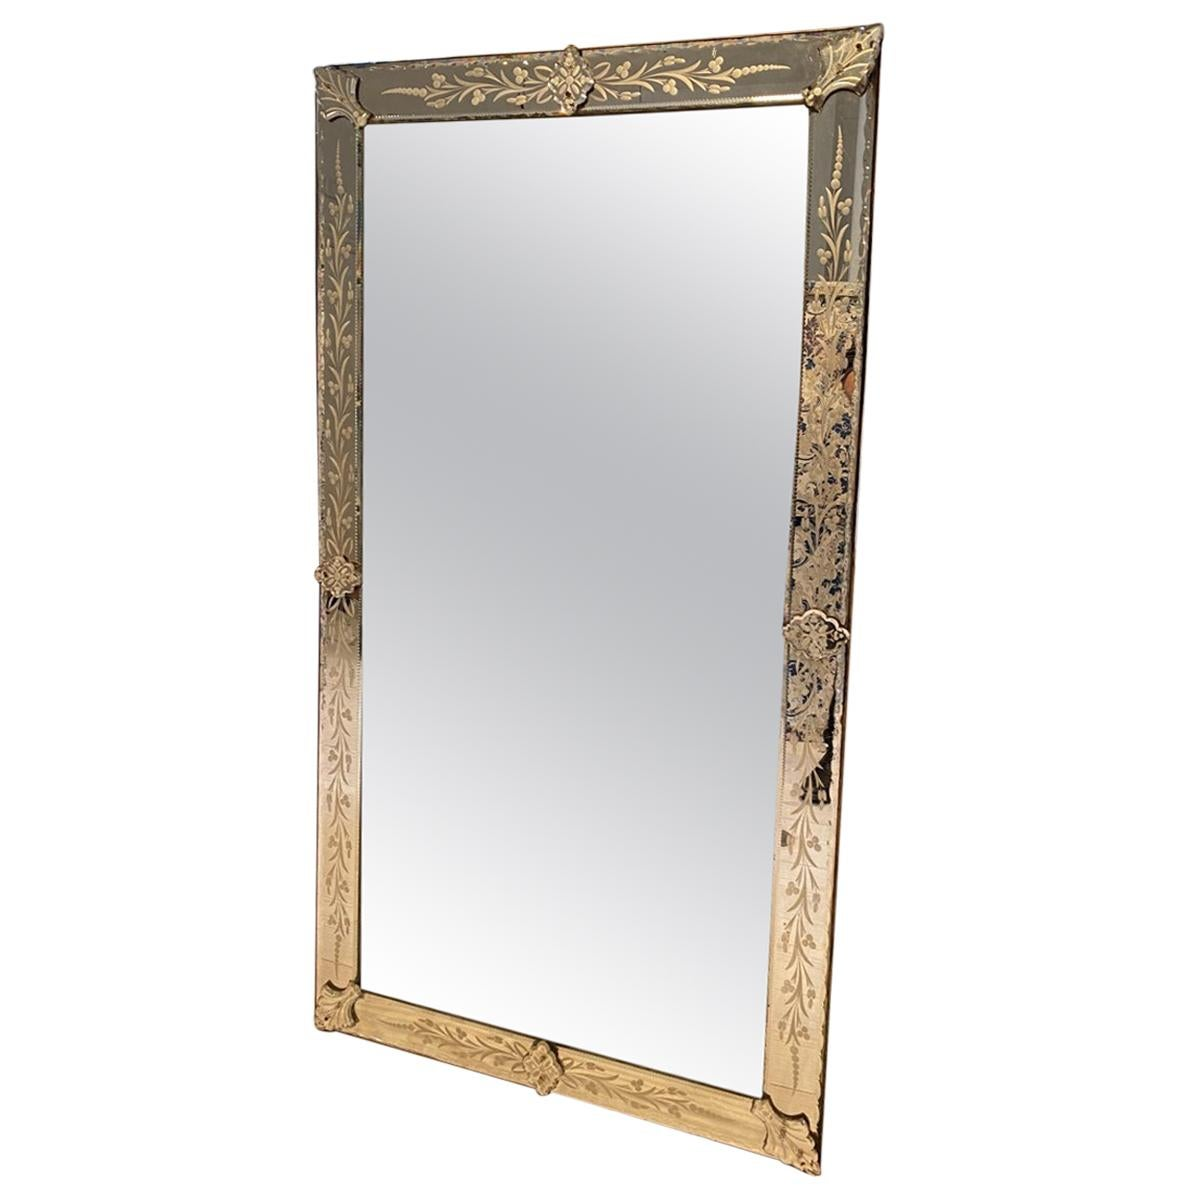 Magnificent 1940s French Venetian Mirror